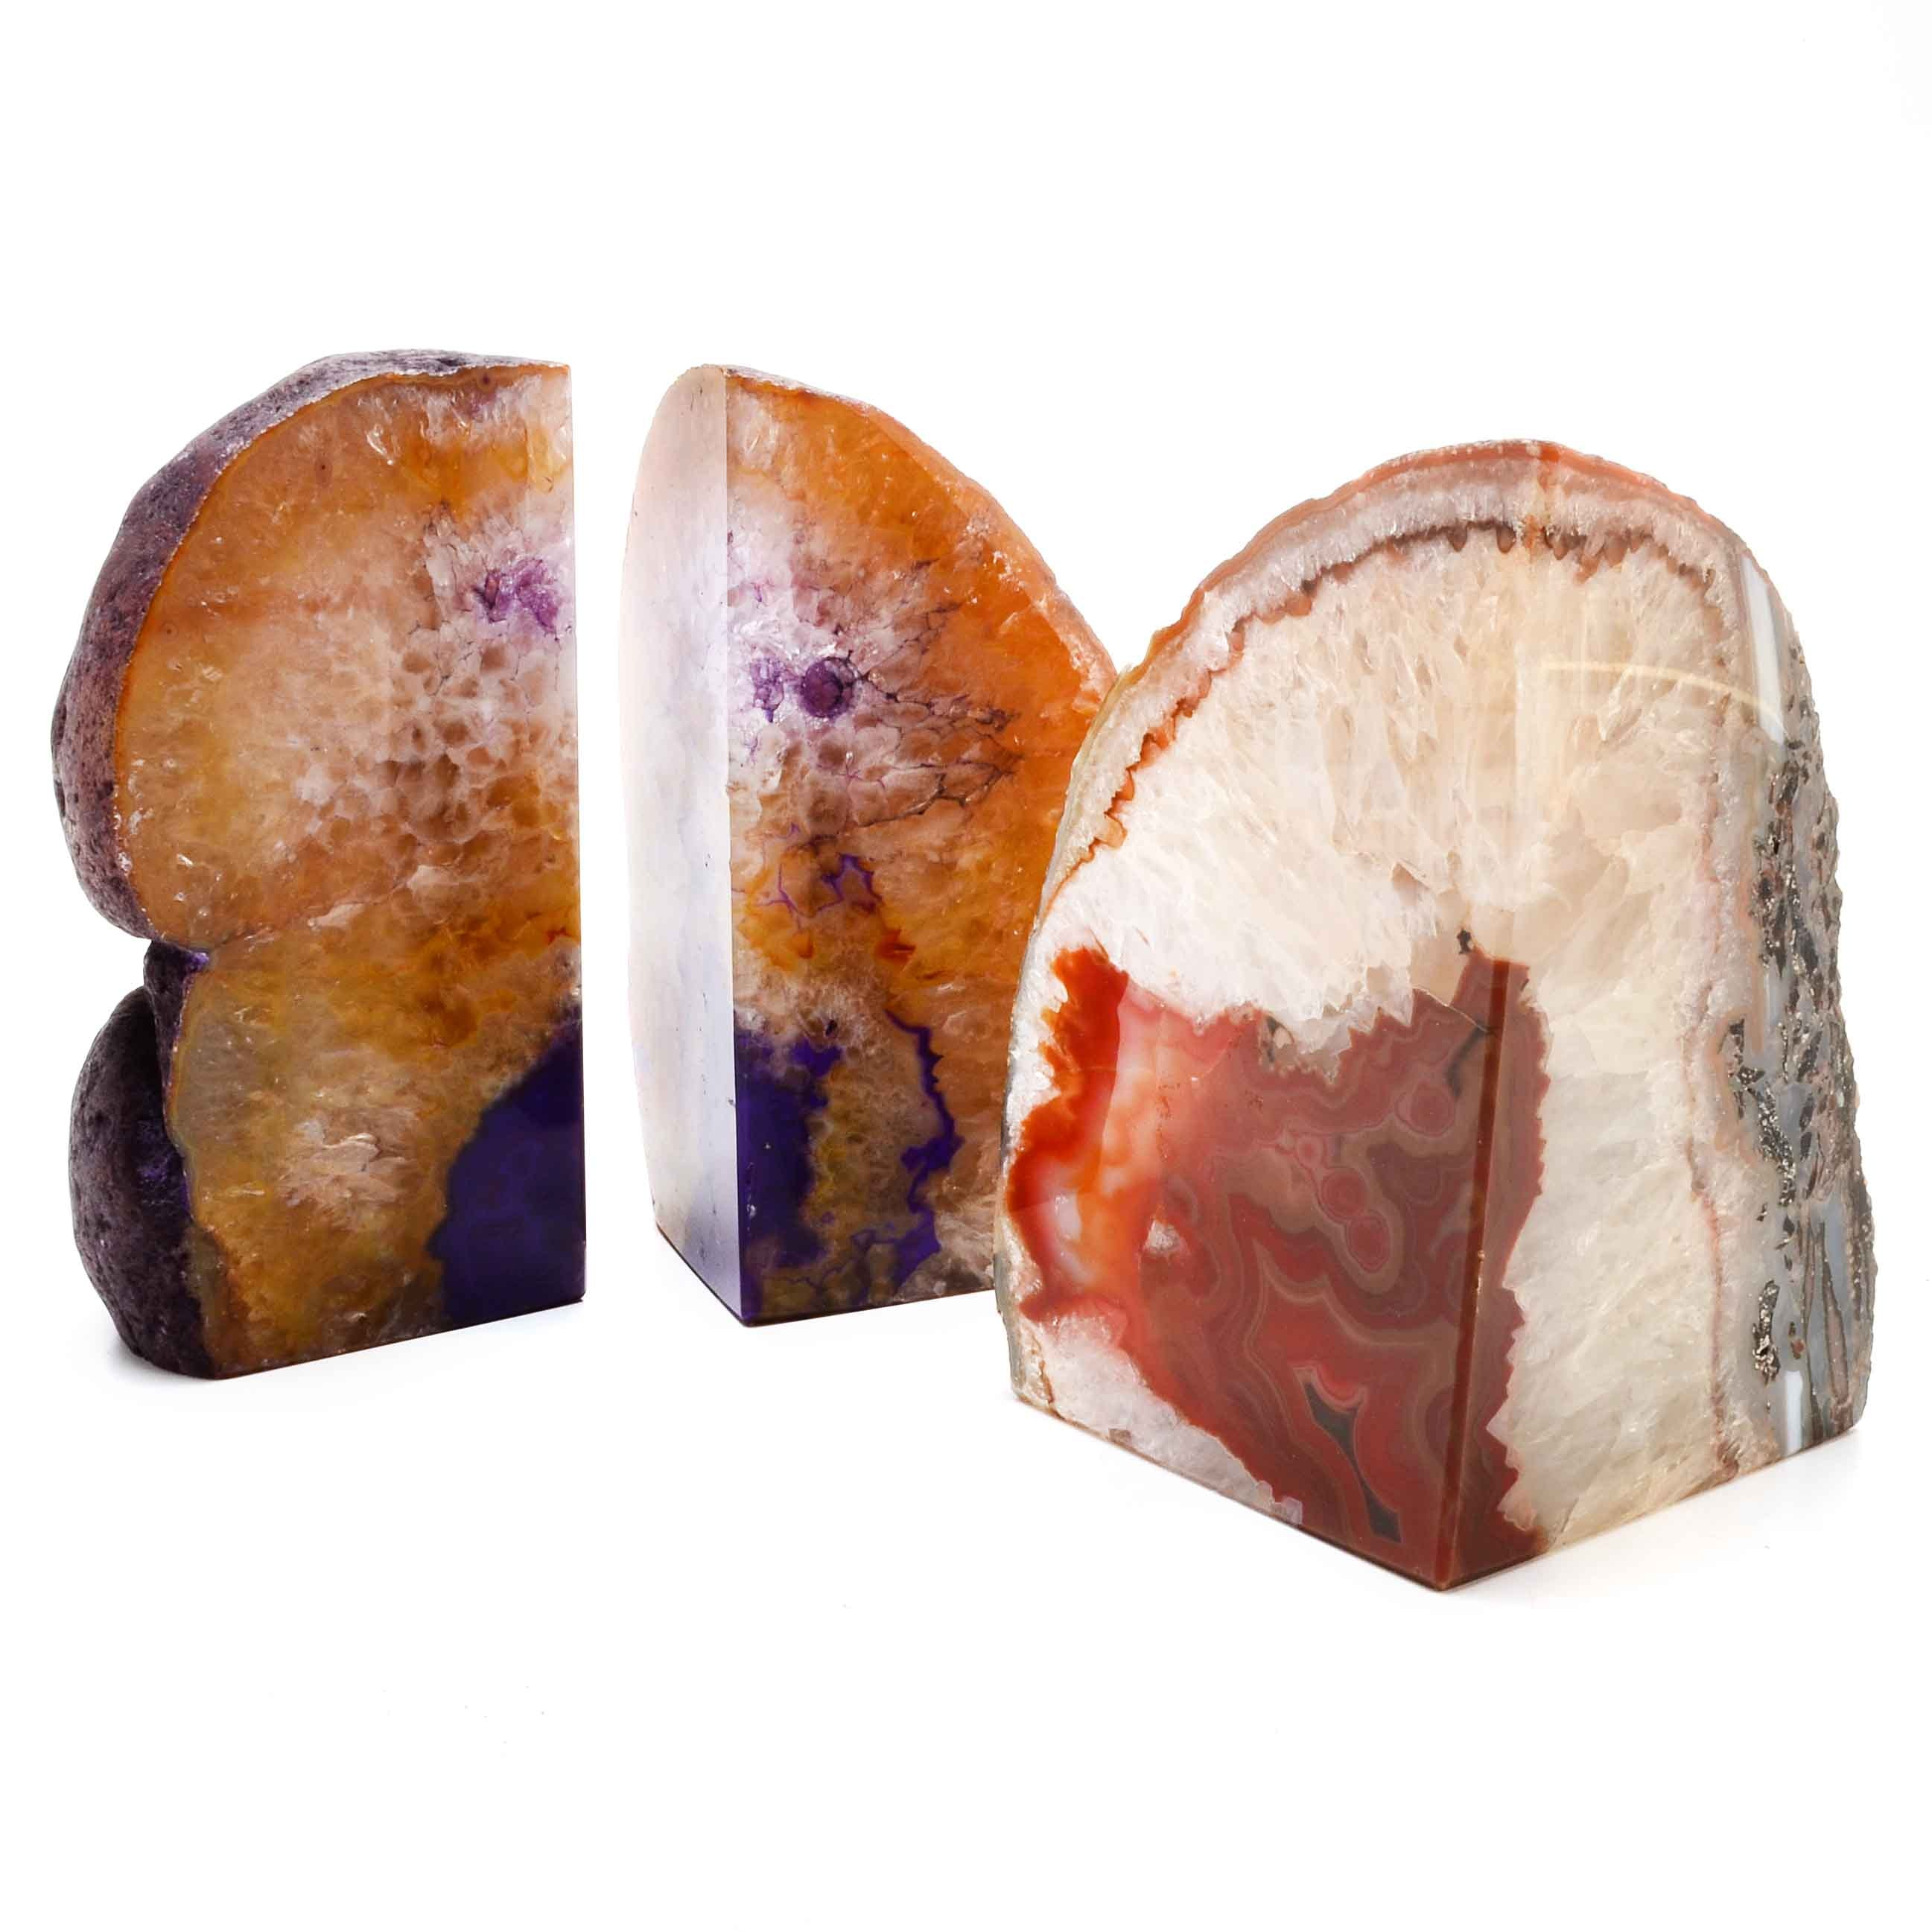 Dyed, Cut and Polished Geode Slabs